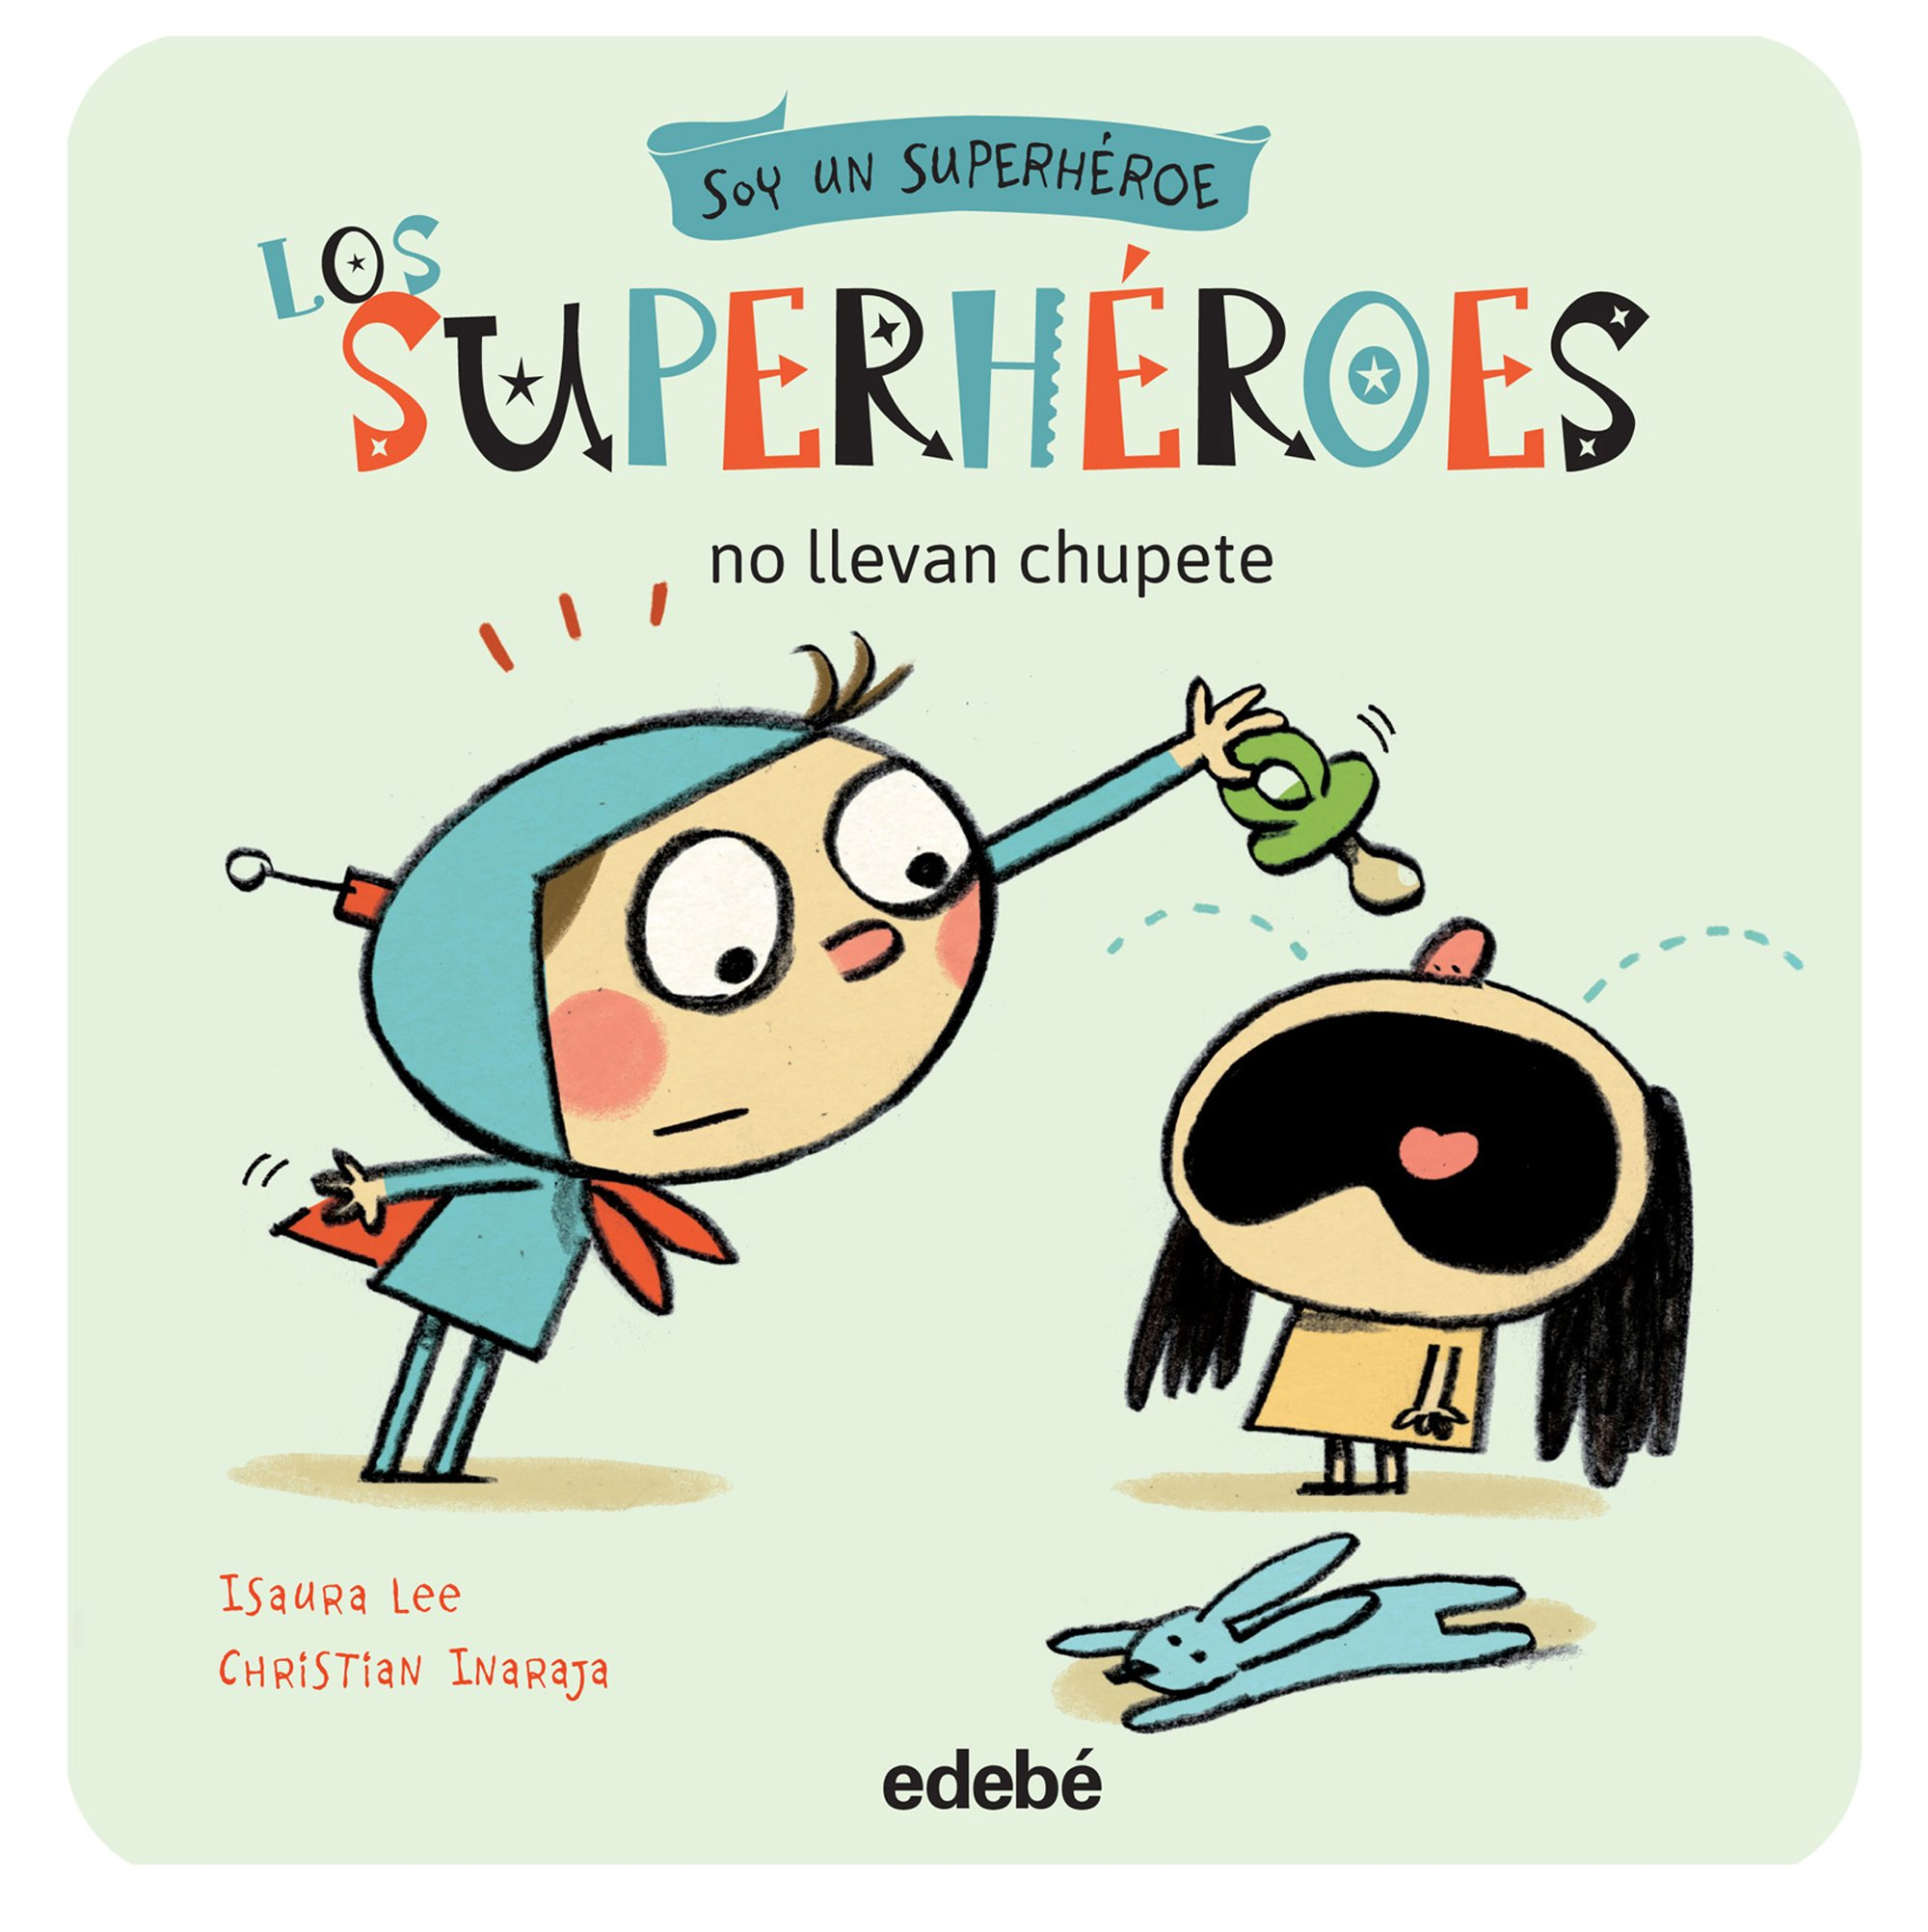 Amazon.com: Los superhéroes no llevan chupete (Spanish Edition ...